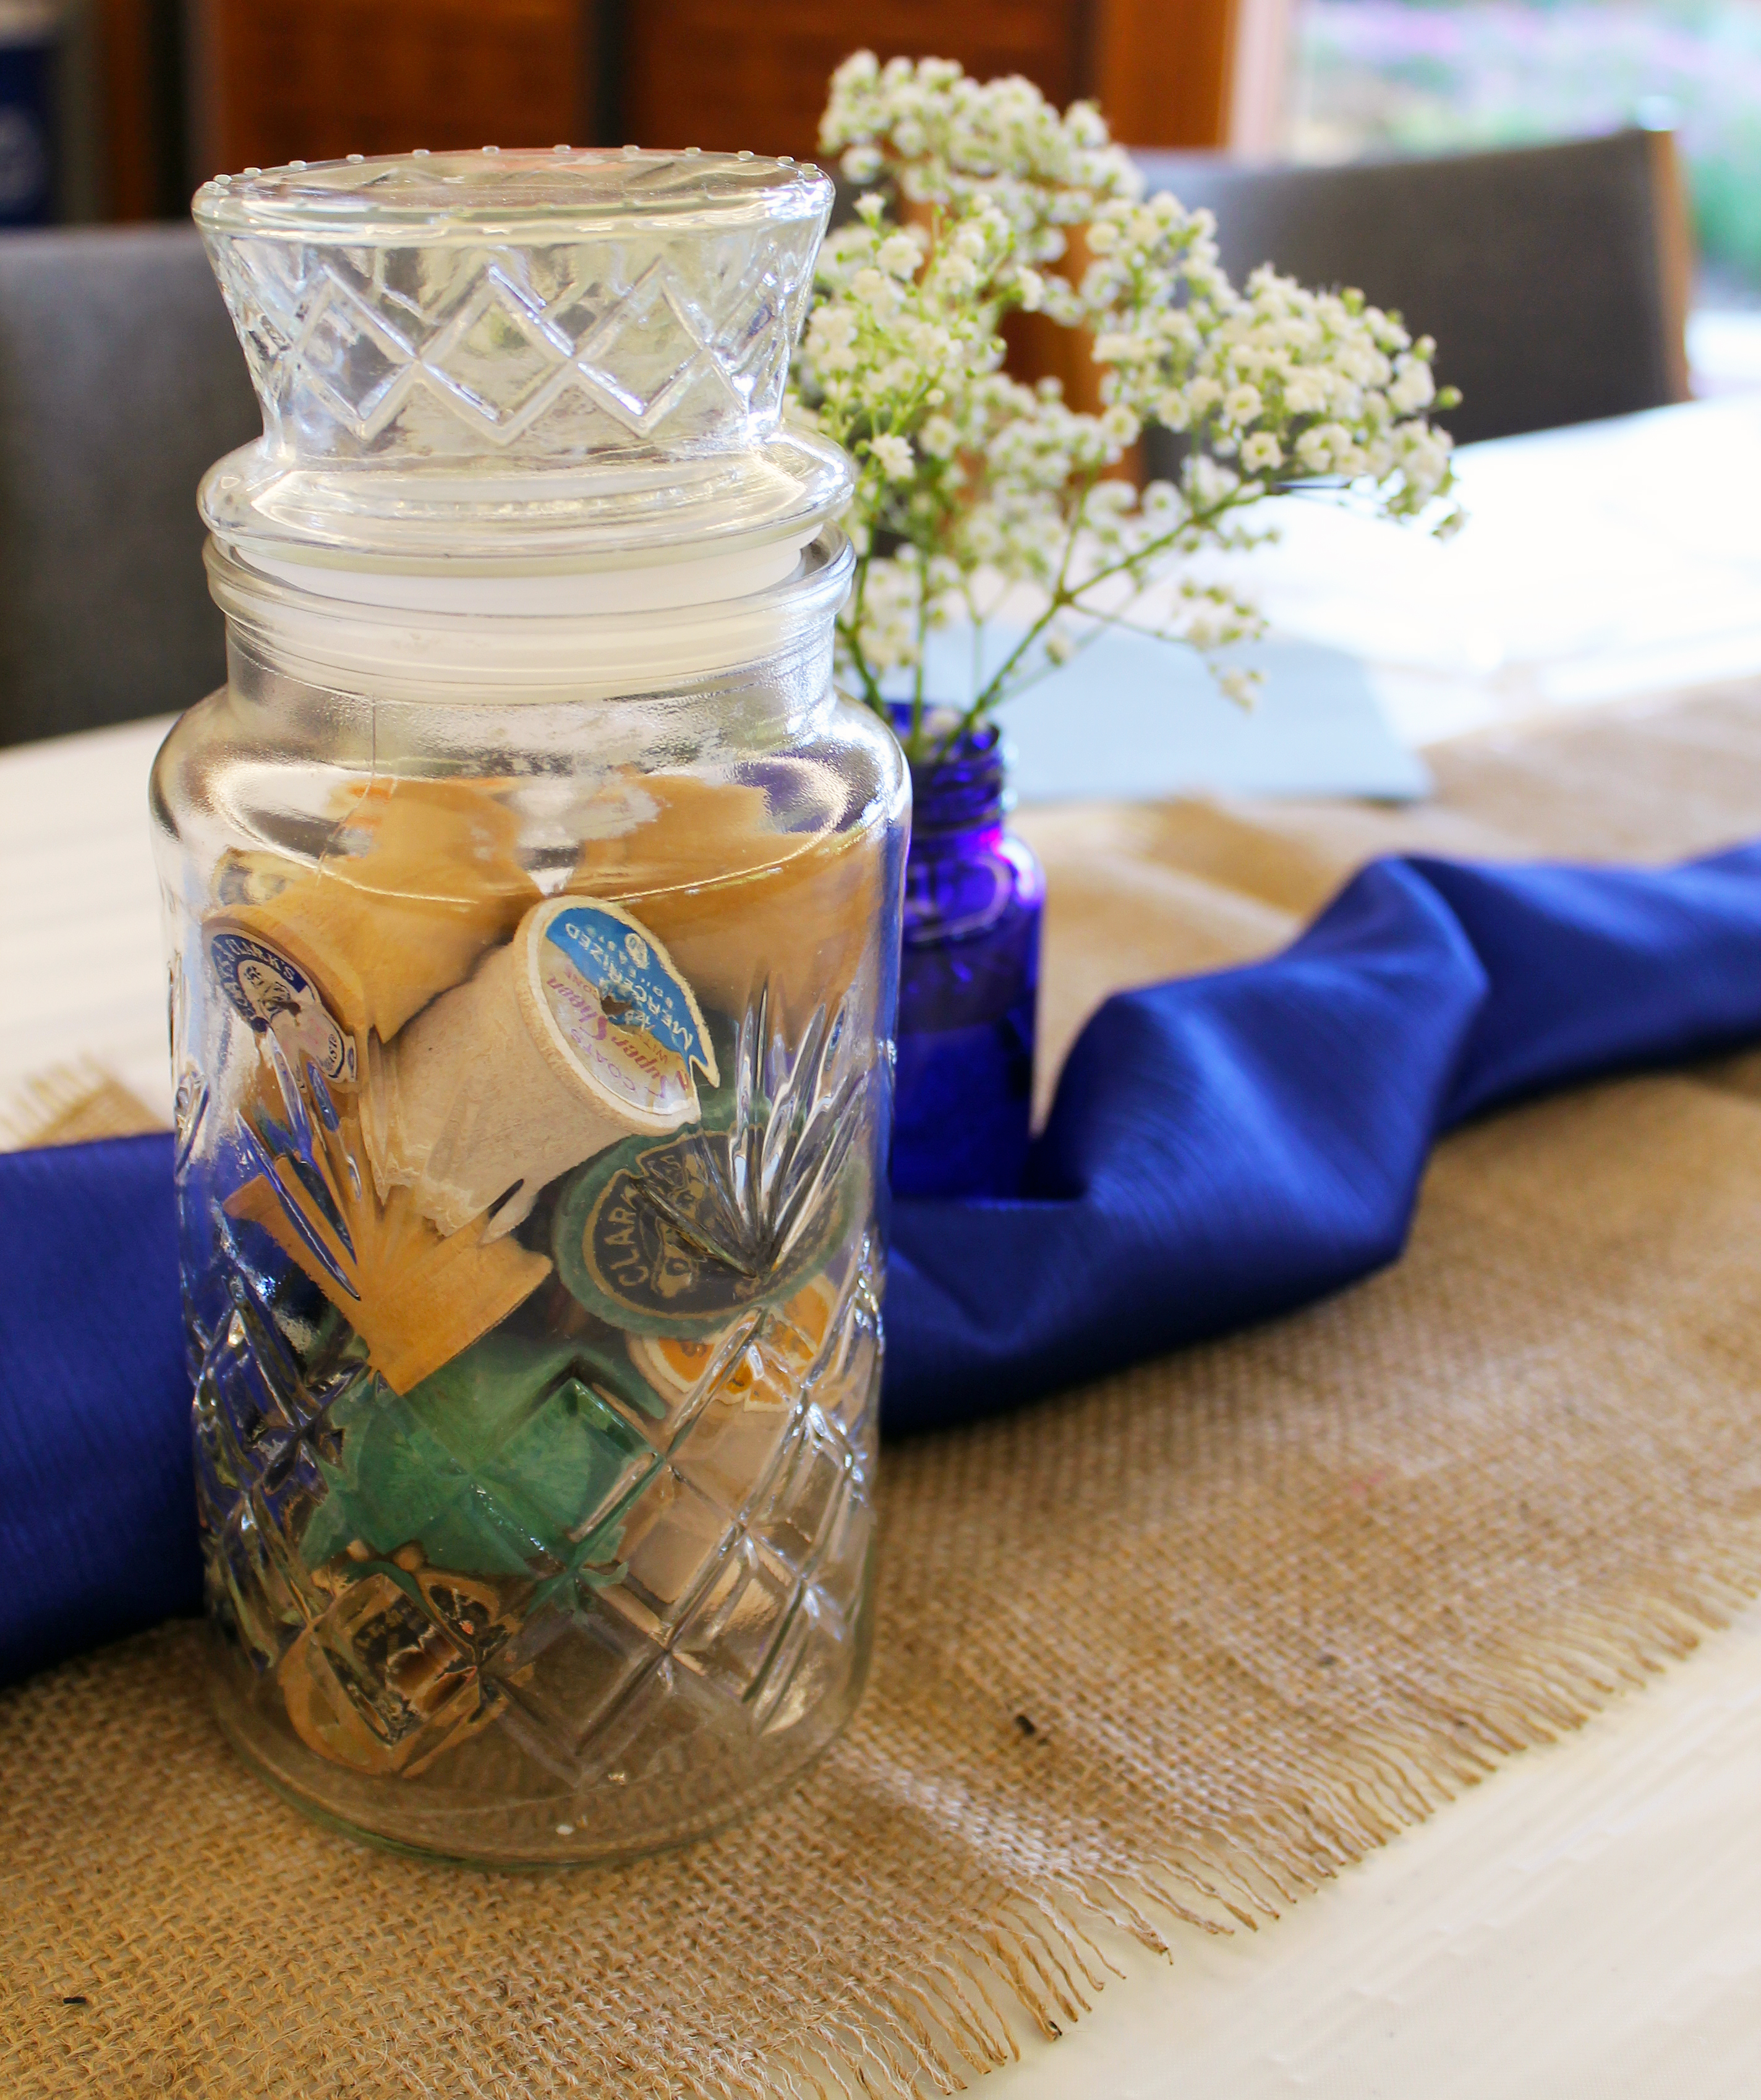 Repurposed wedding decorations archives dyck arboretum eco friendly wedding dyck arboretum junglespirit Image collections